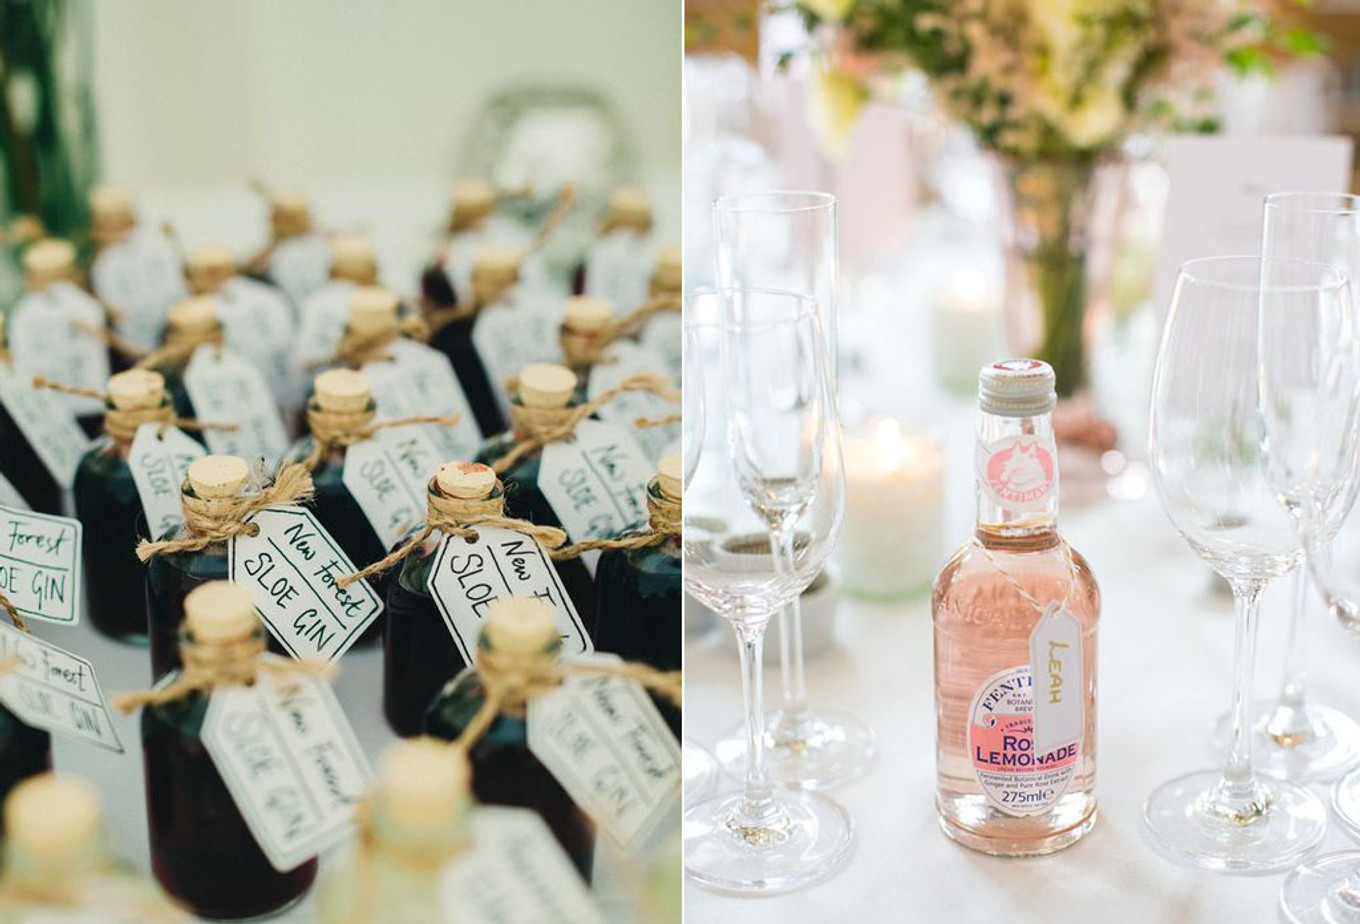 12 Delectable Favor Ideas for A Personalized Wedding - Bridestory Blog